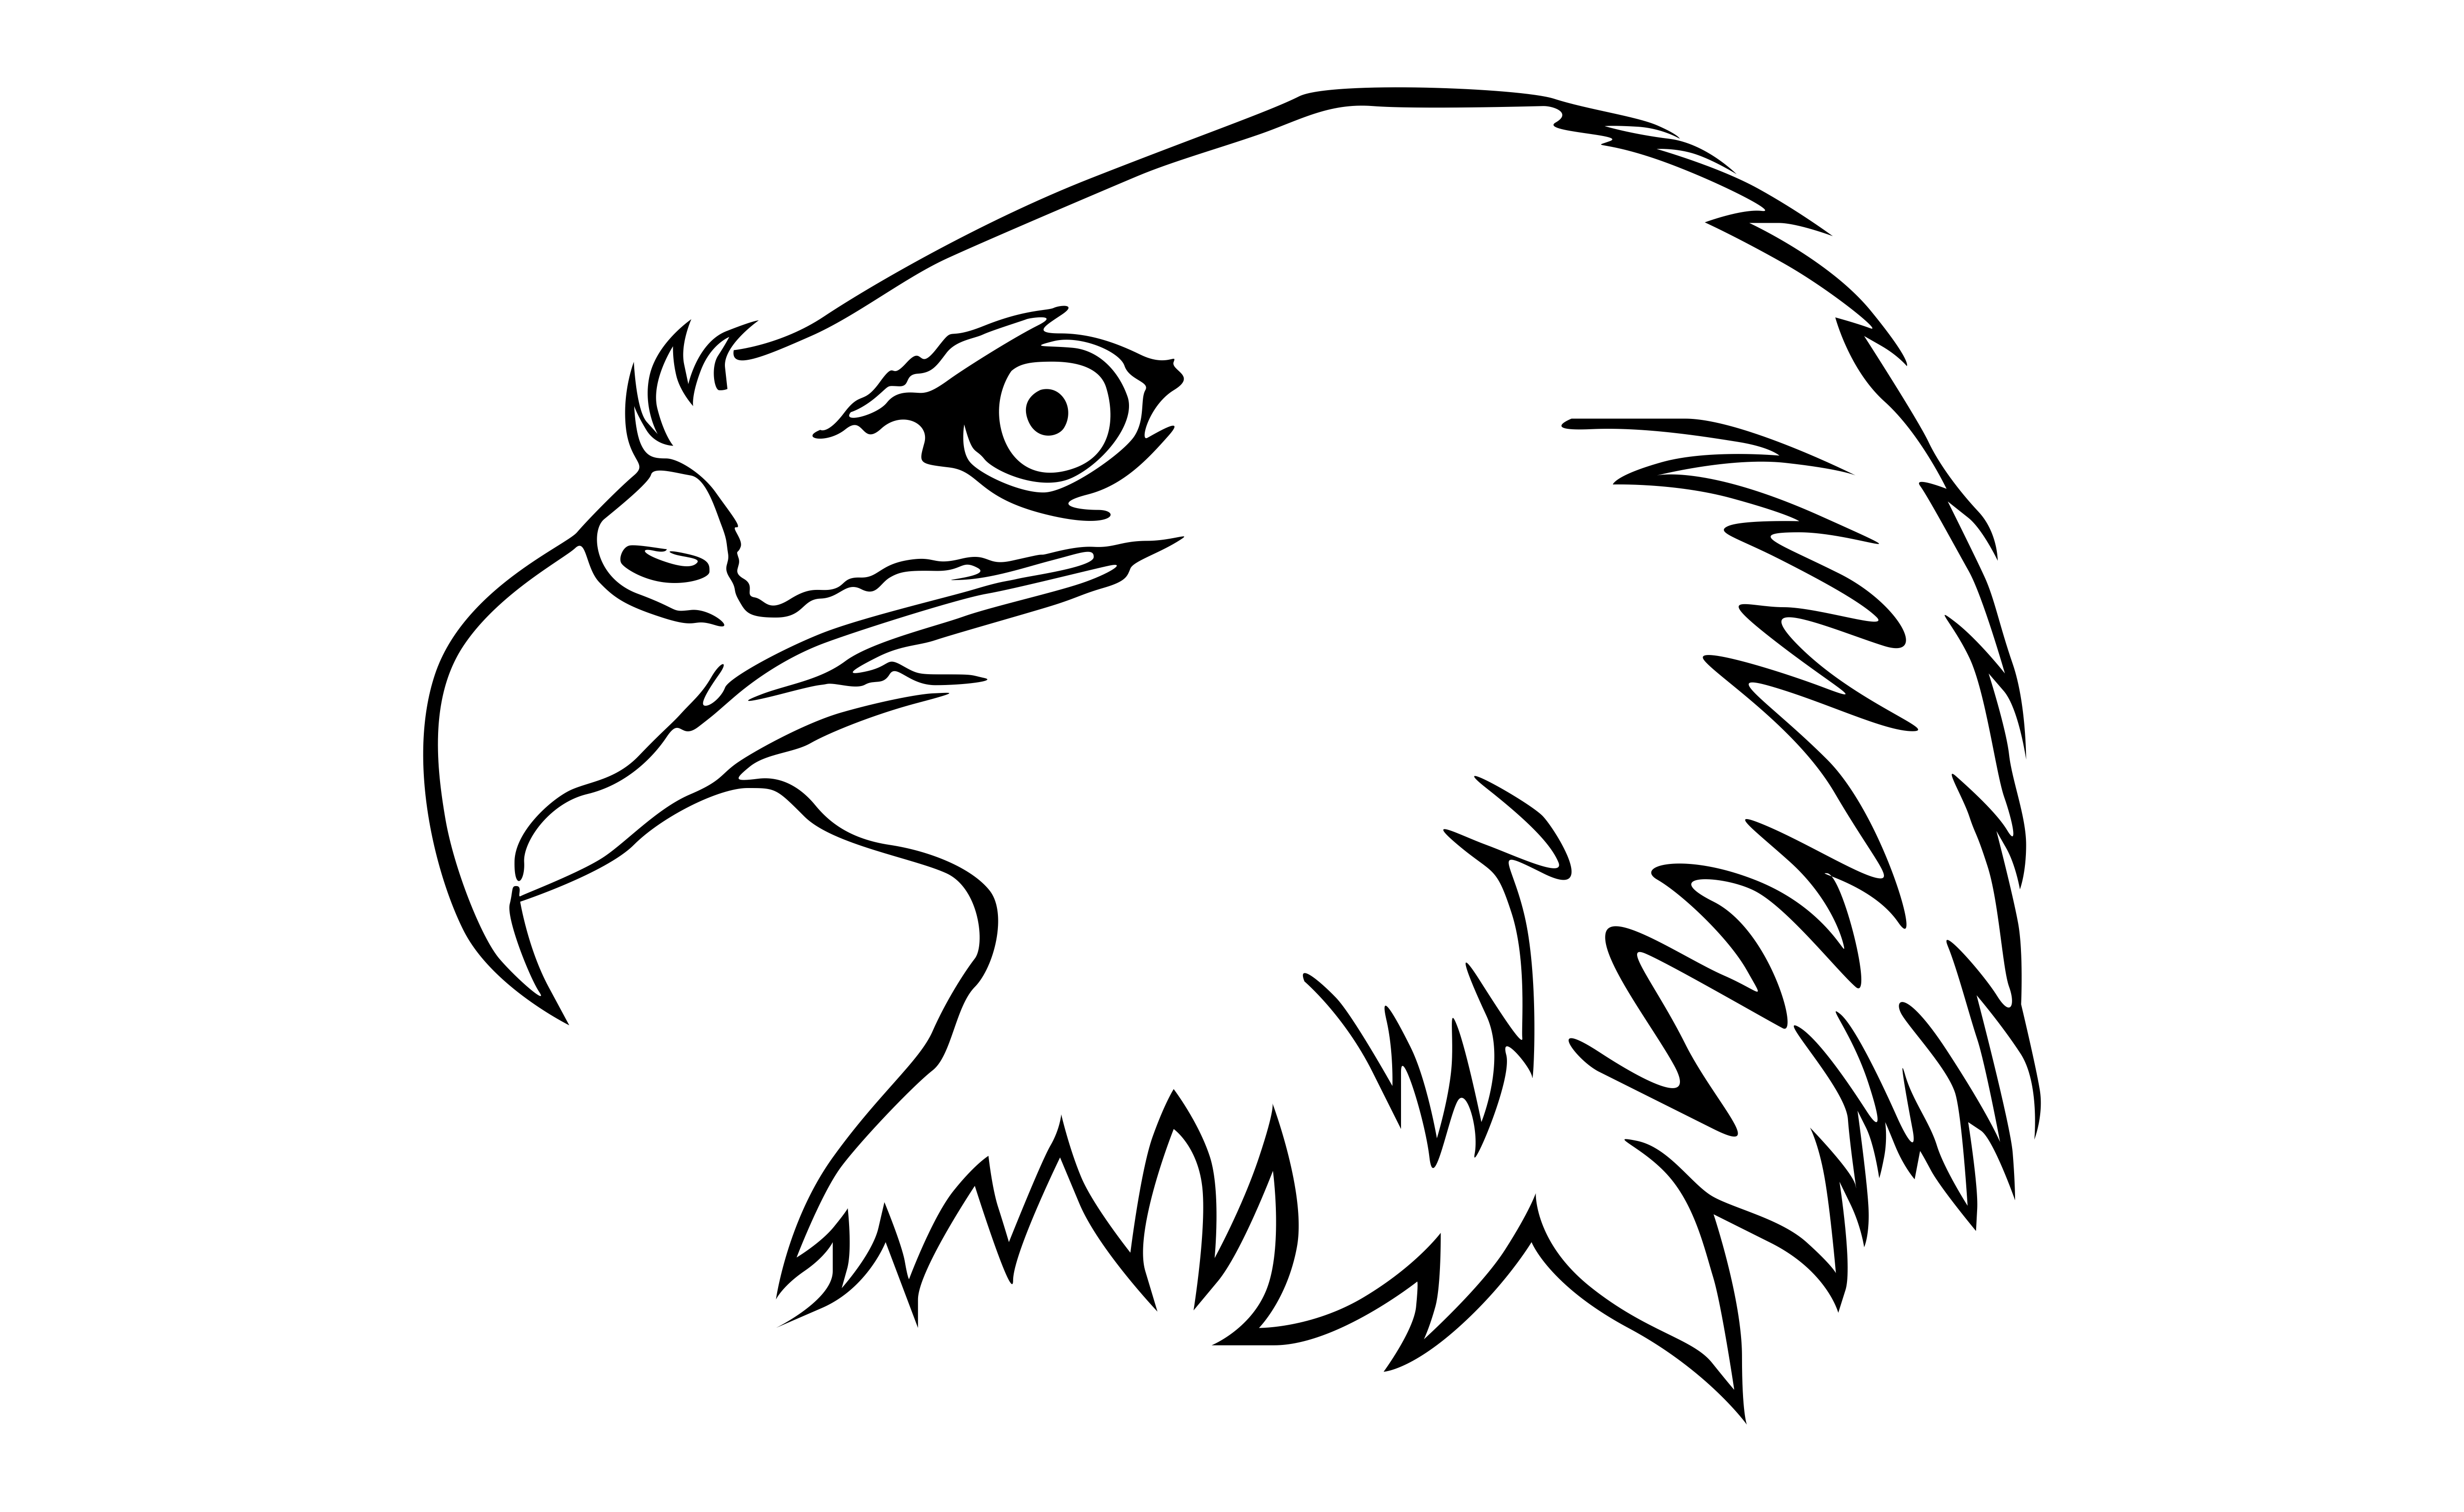 Download Free Eagle With Line Art Style Graphic By Arief Sapta Adjie SVG Cut Files